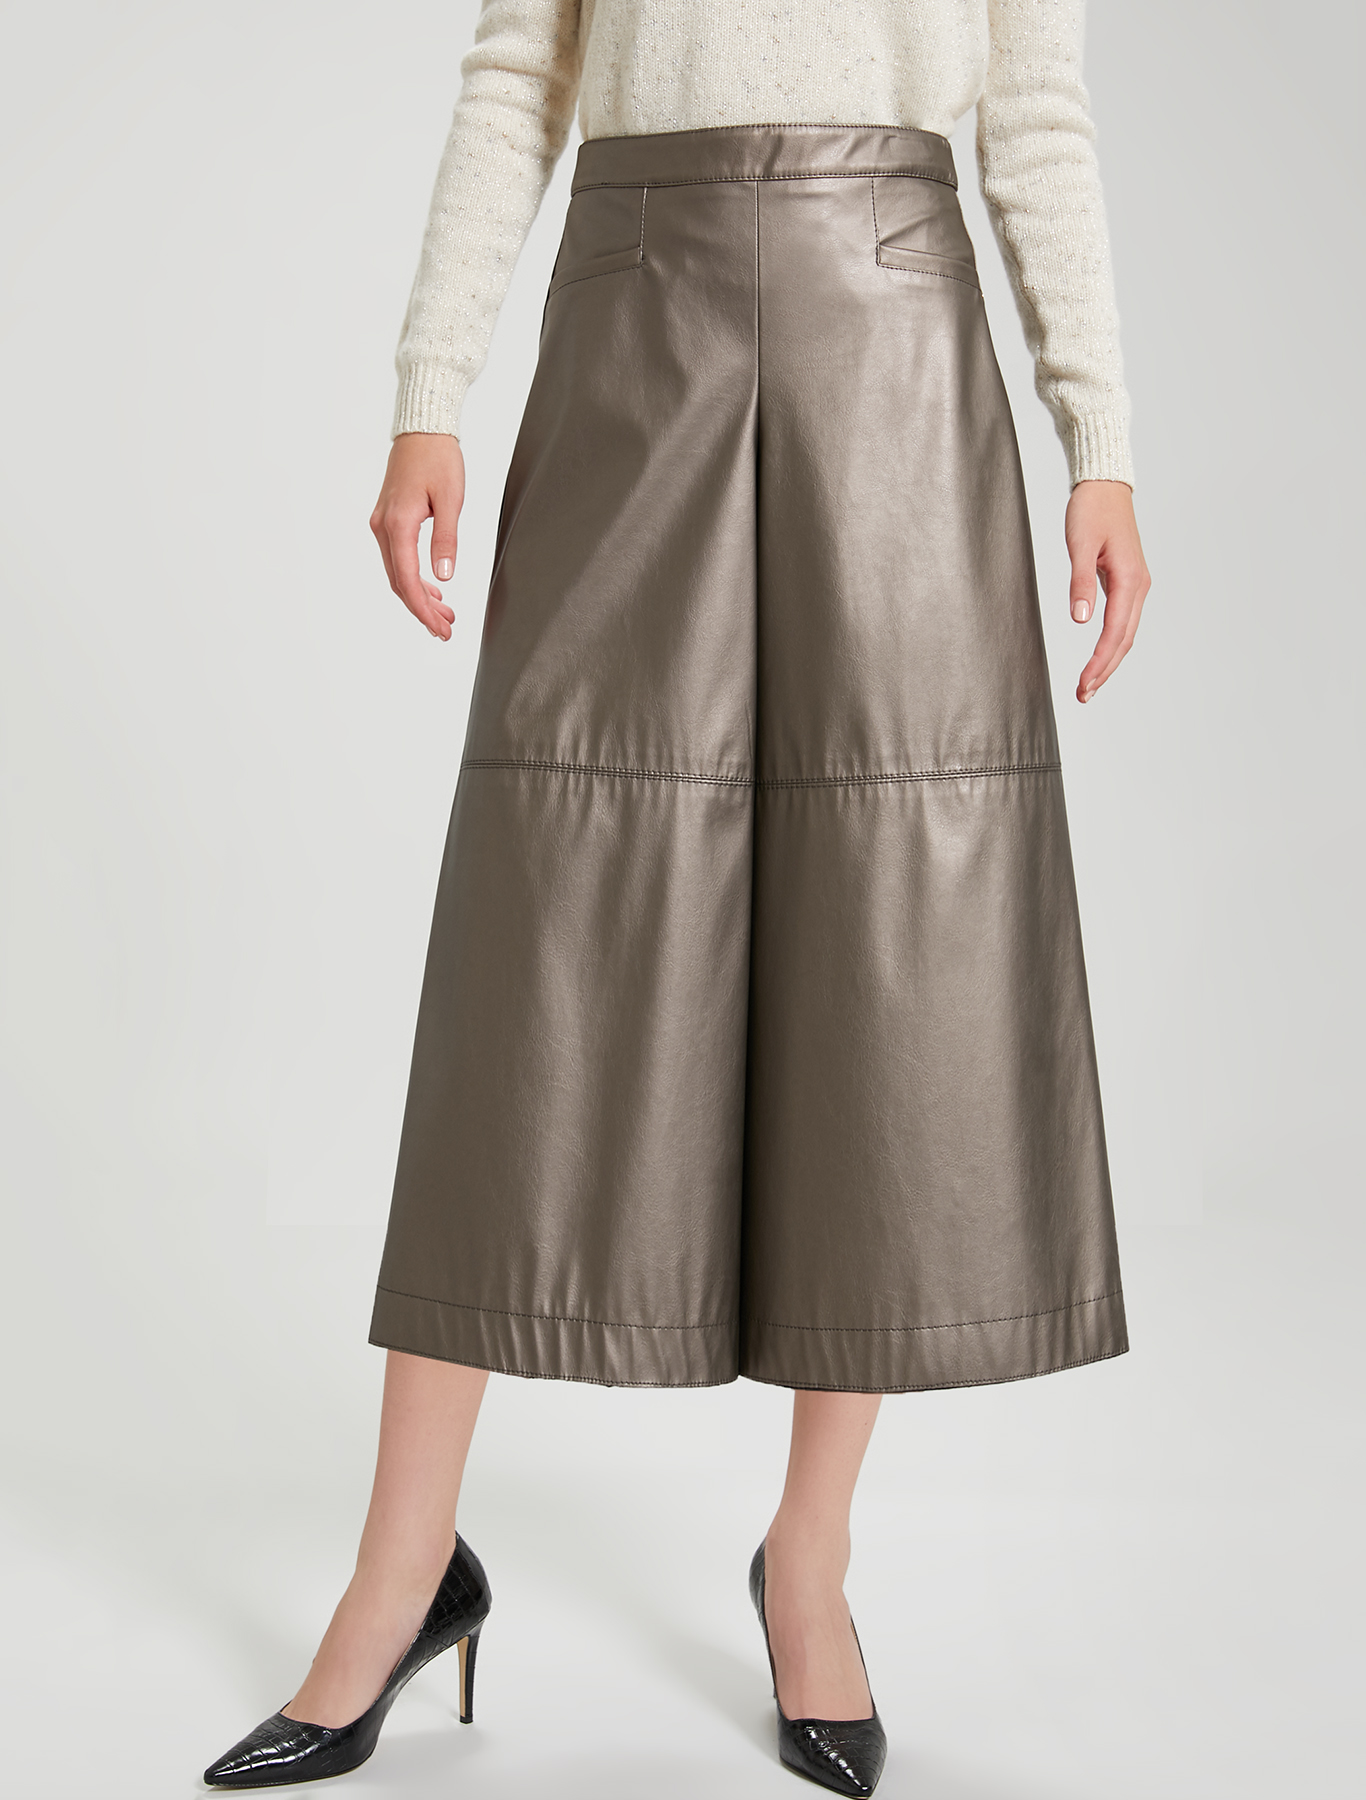 Gonna pantalone in jersey - bronzo - pennyblack